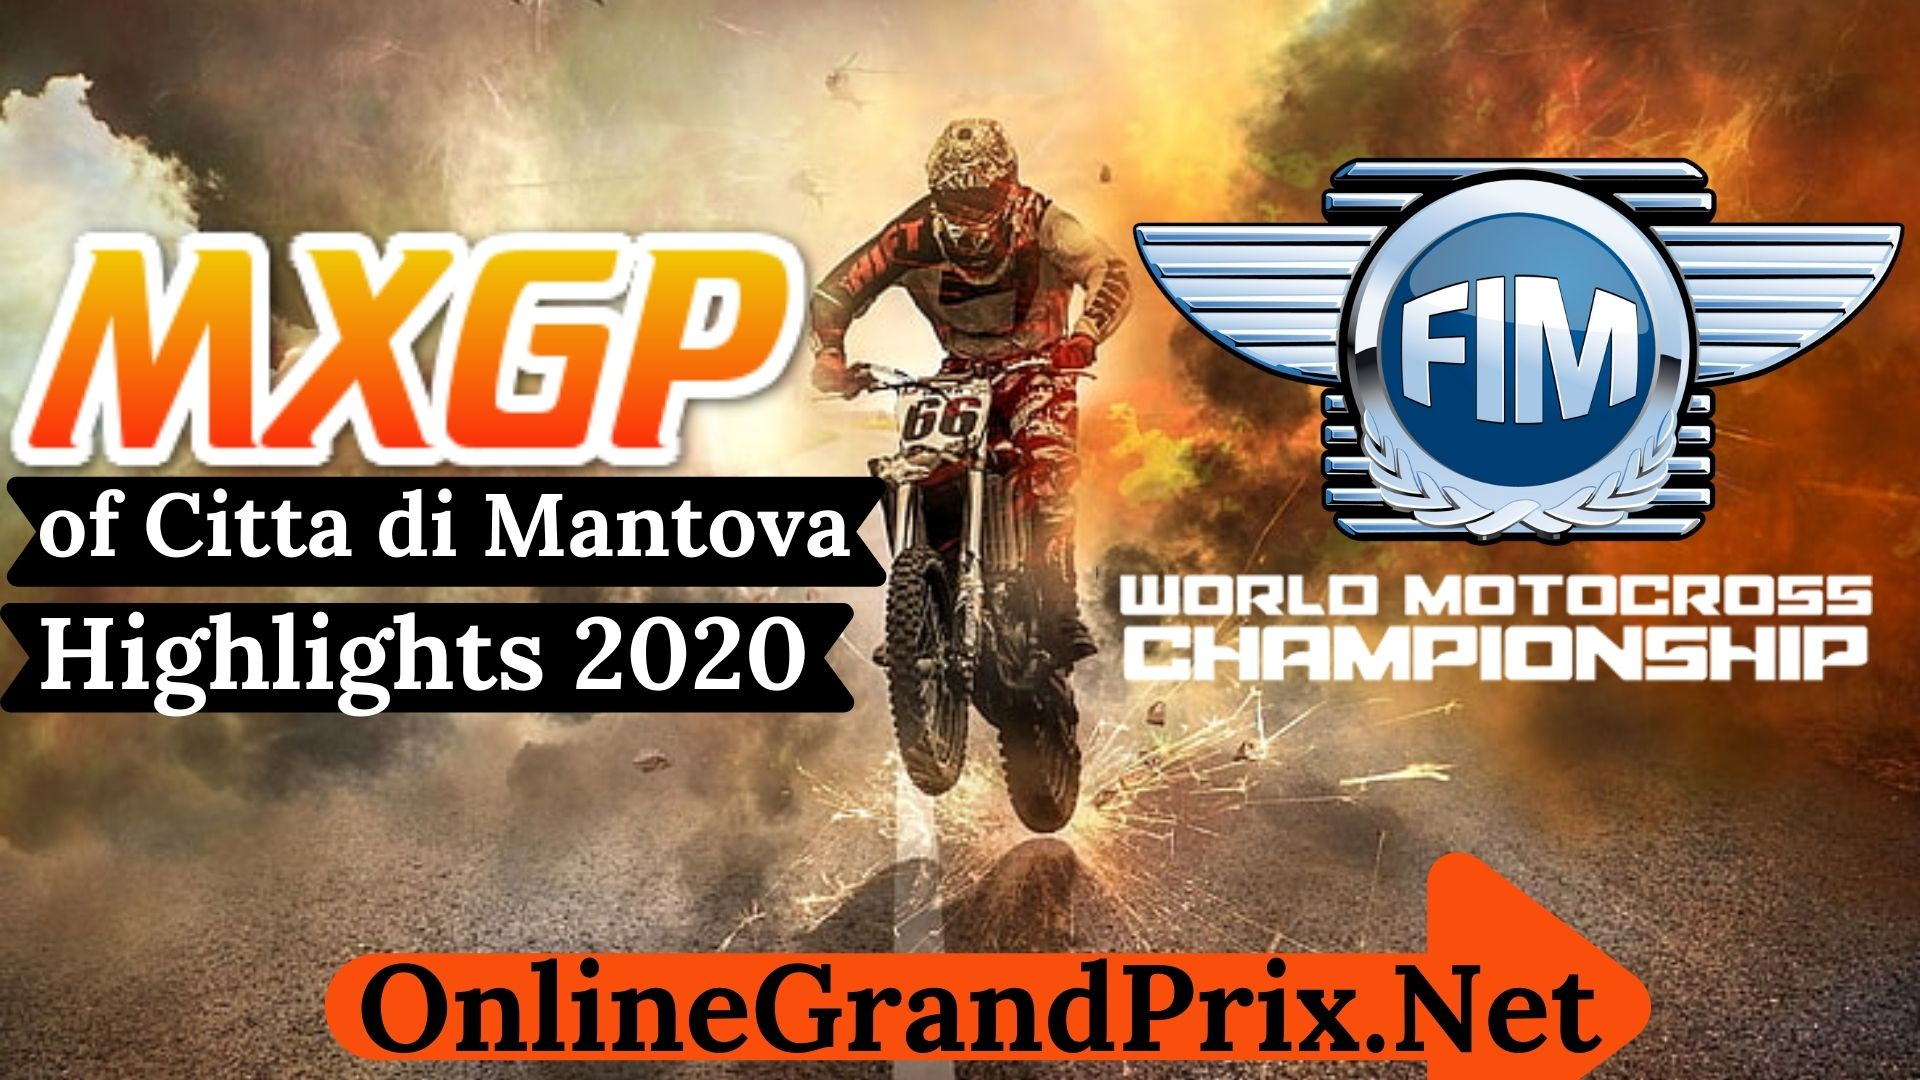 MXGP of Citta Di Mantova Highlights 2020